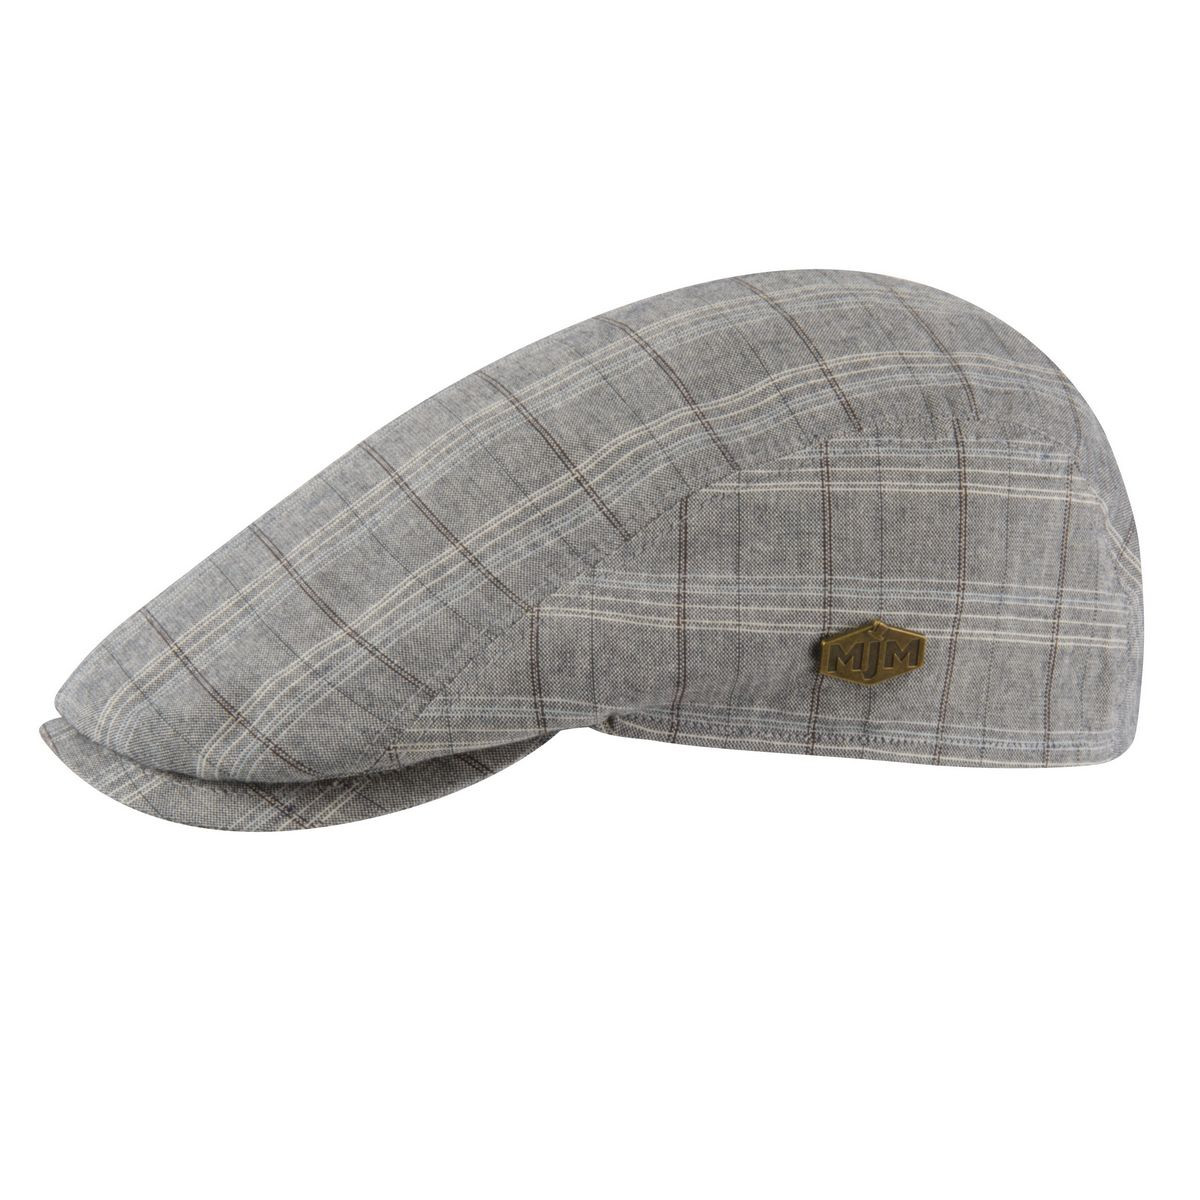 Buy MJM Young Flat Cap - Grey Check made of 100% Cotton in Grey ... 8f7e92e90c5